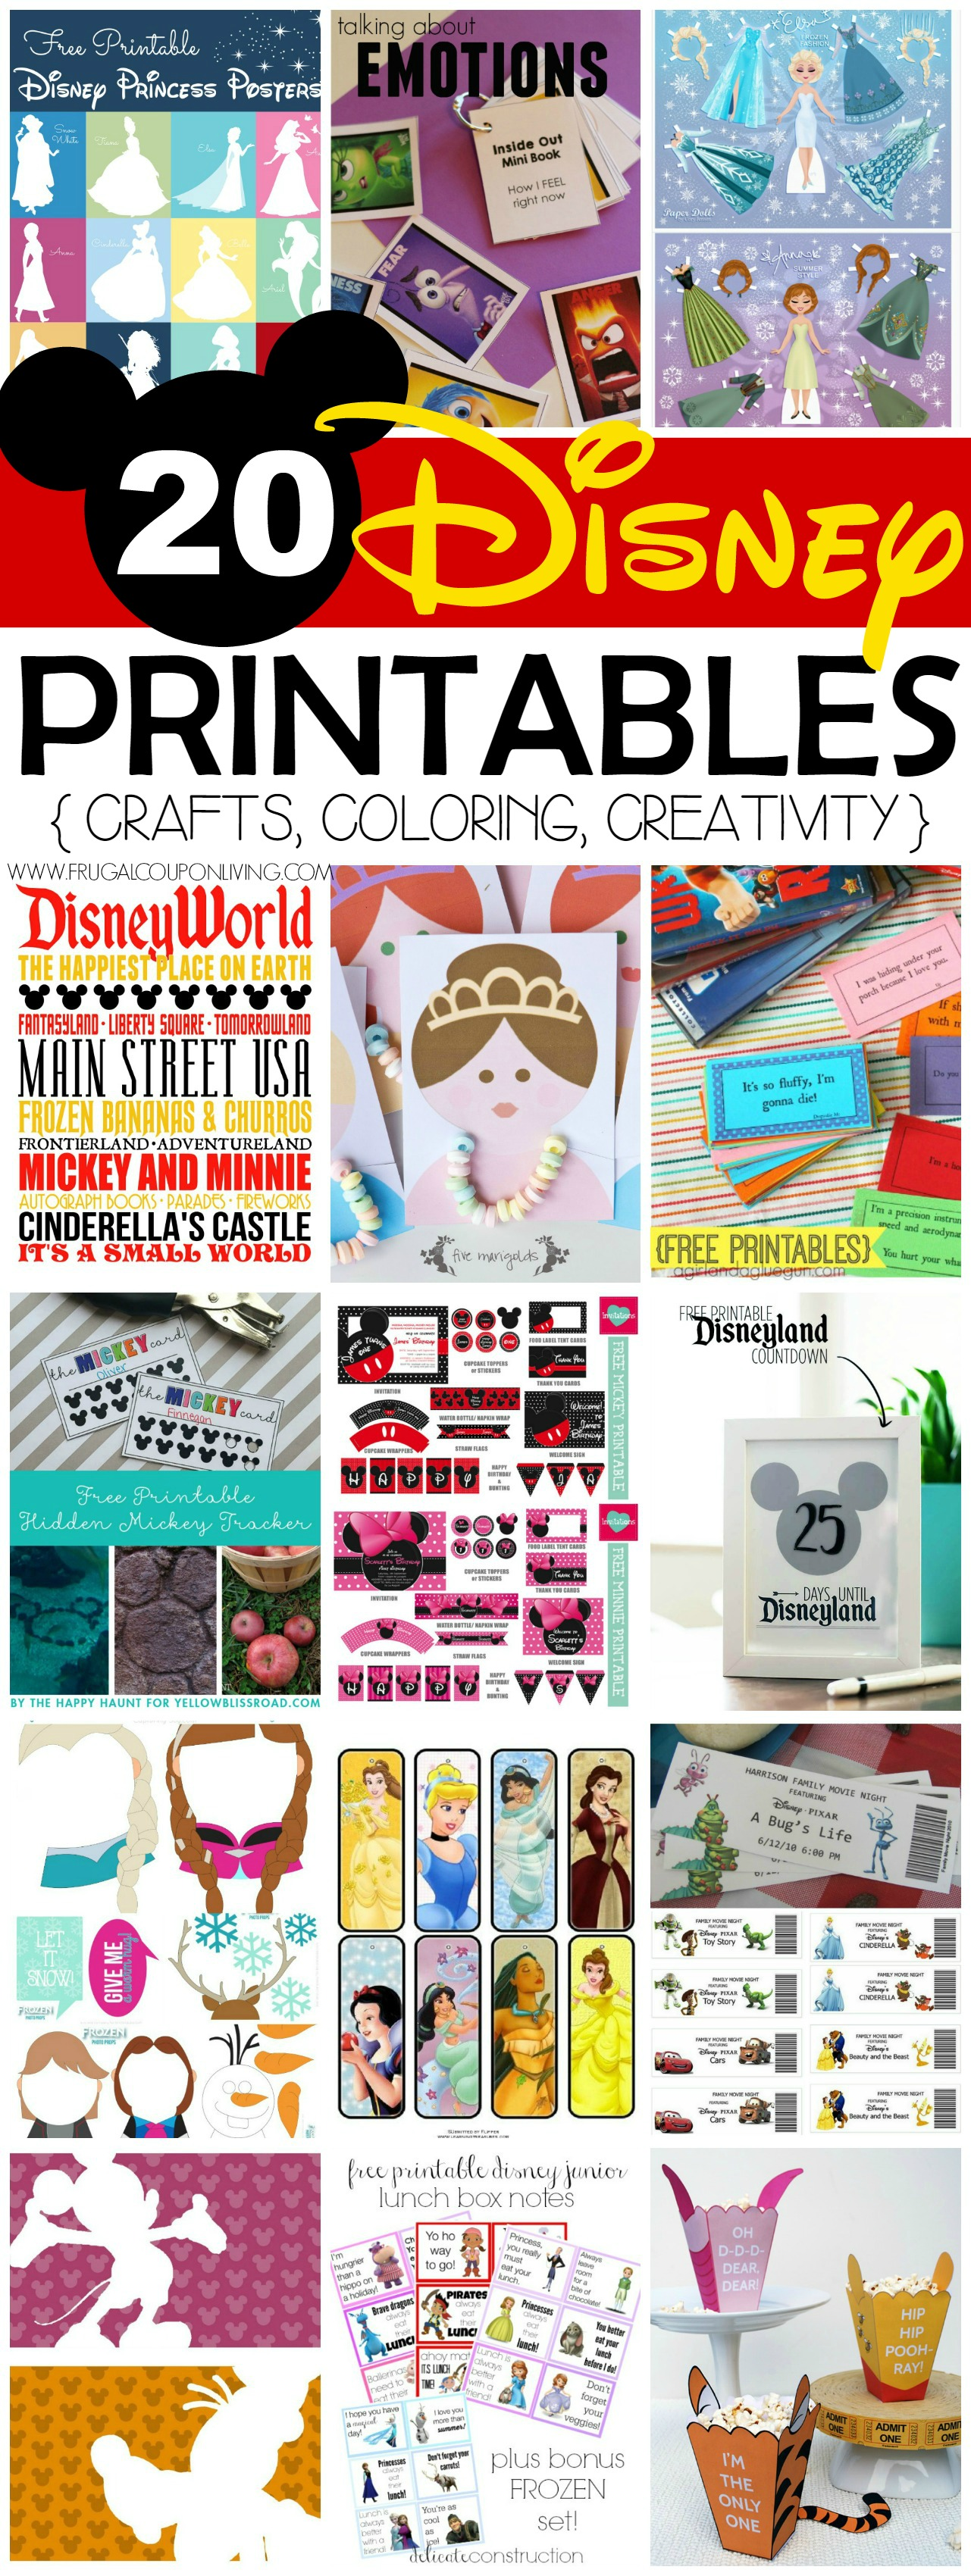 photograph regarding Disneyland Printable Coupons identify 20 Free of charge Disney Printables - Crafts, Coloring, Creativeness